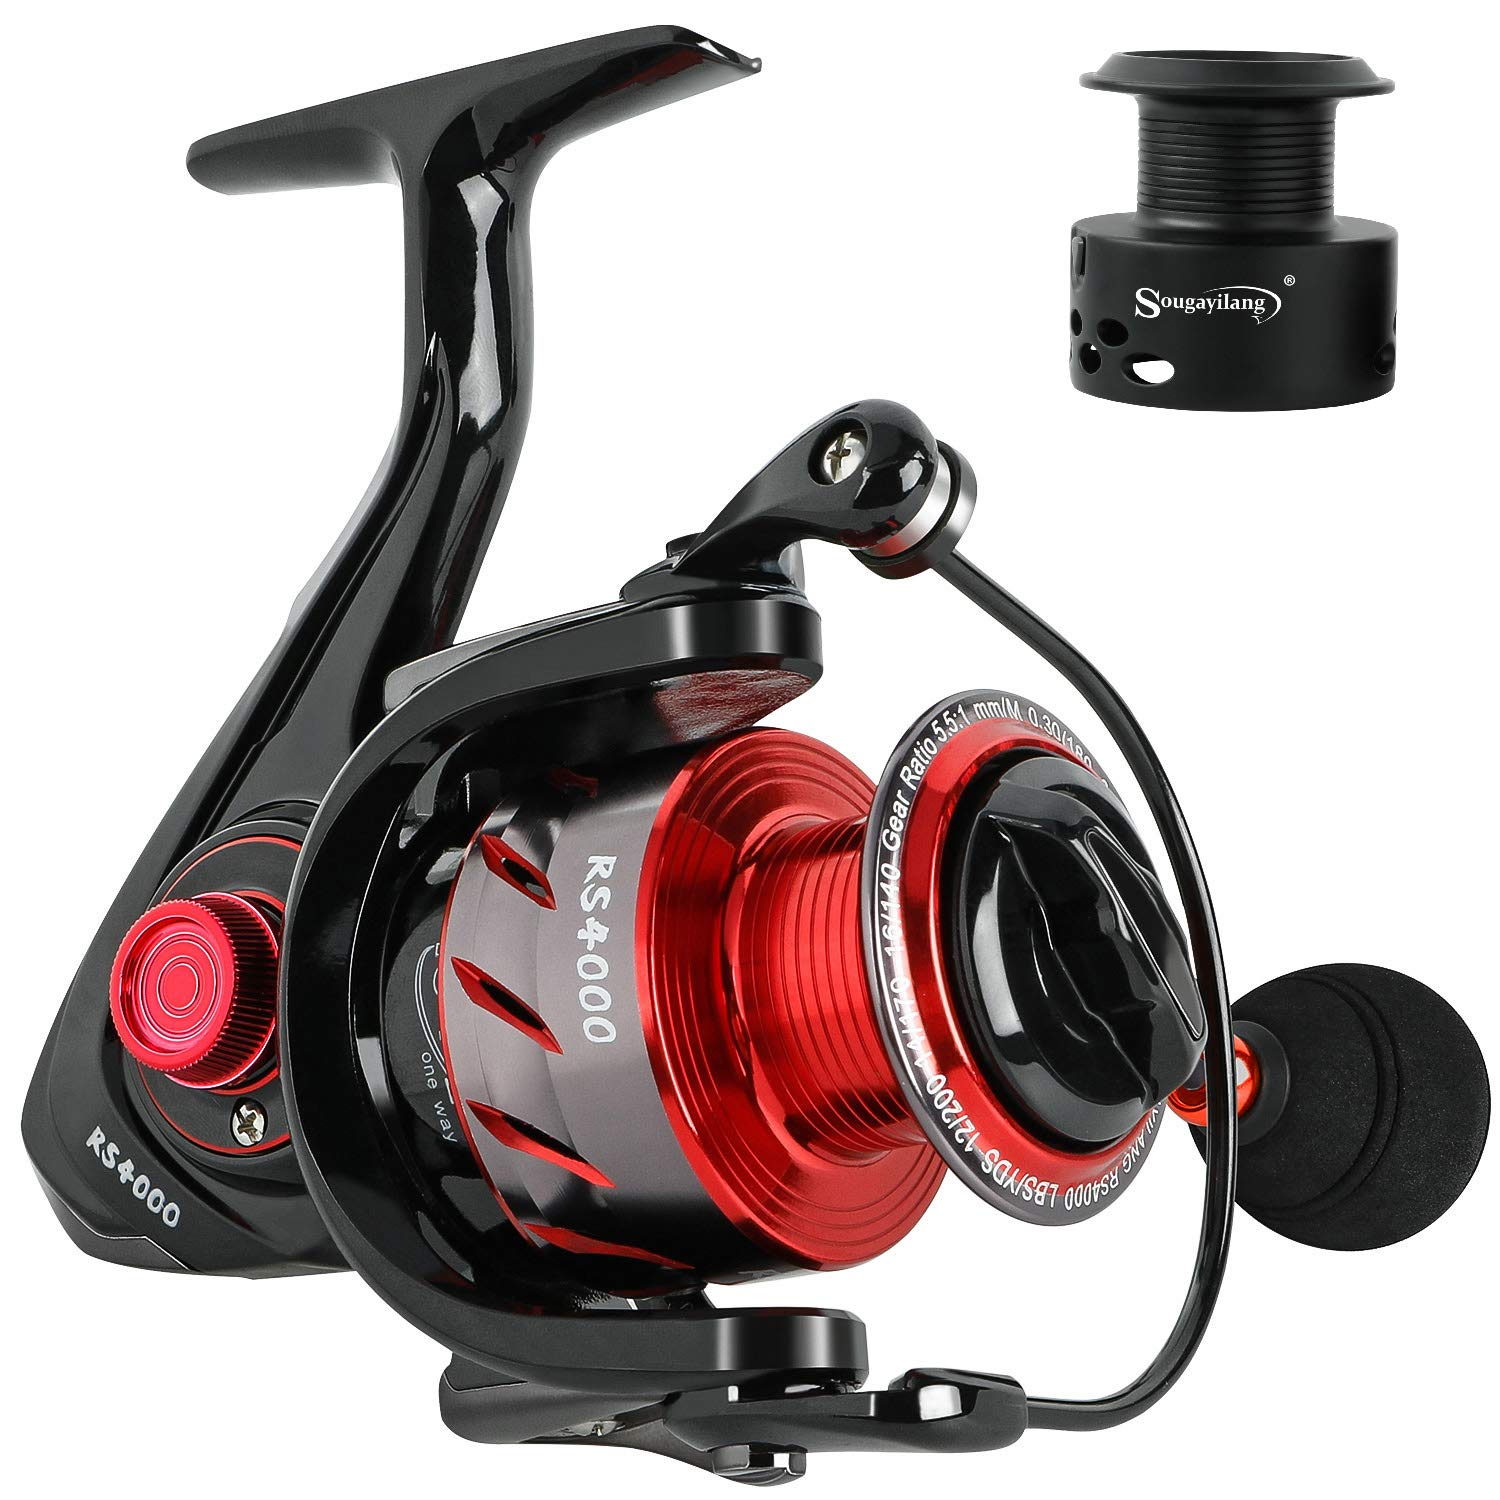 Sougayilang Spinning Reels Fishing Reel with 13 1 Corrosion Resistant Ball Bearings, W-Ship Gearing, Silent Drive, SXS Braking System and Free Spare Graphite Spool for Anglers